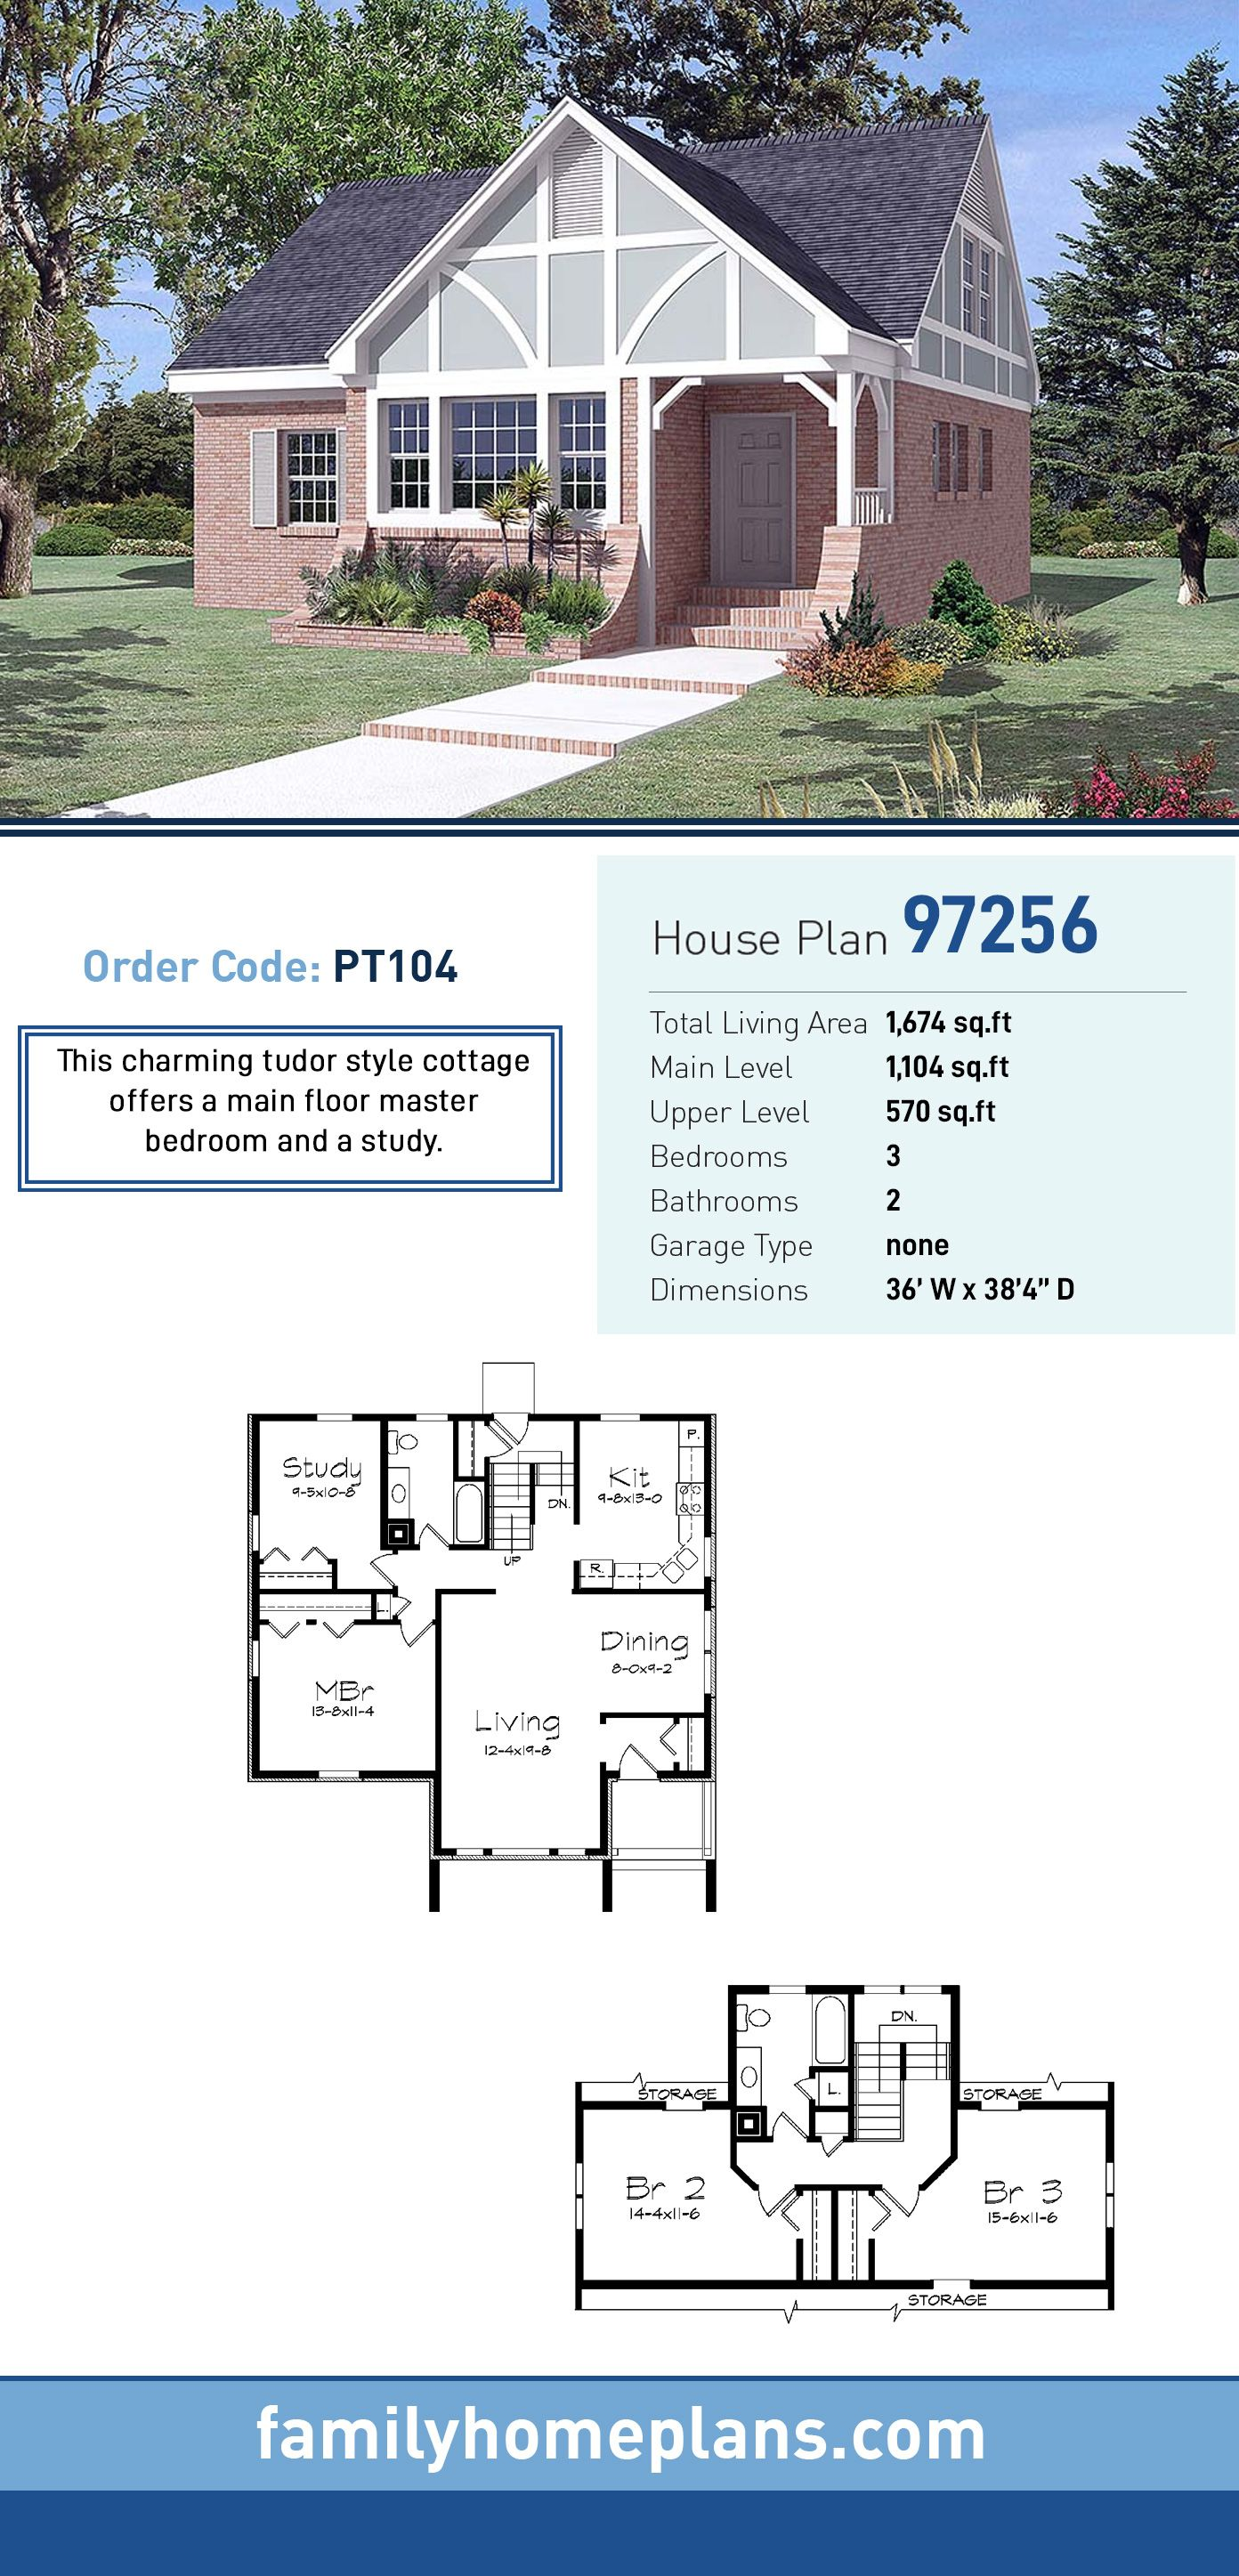 Tudor Style House Plan 97256 With 3 Bed 2 Bath House Plans Tudor Style Homes Cottage Floor Plans